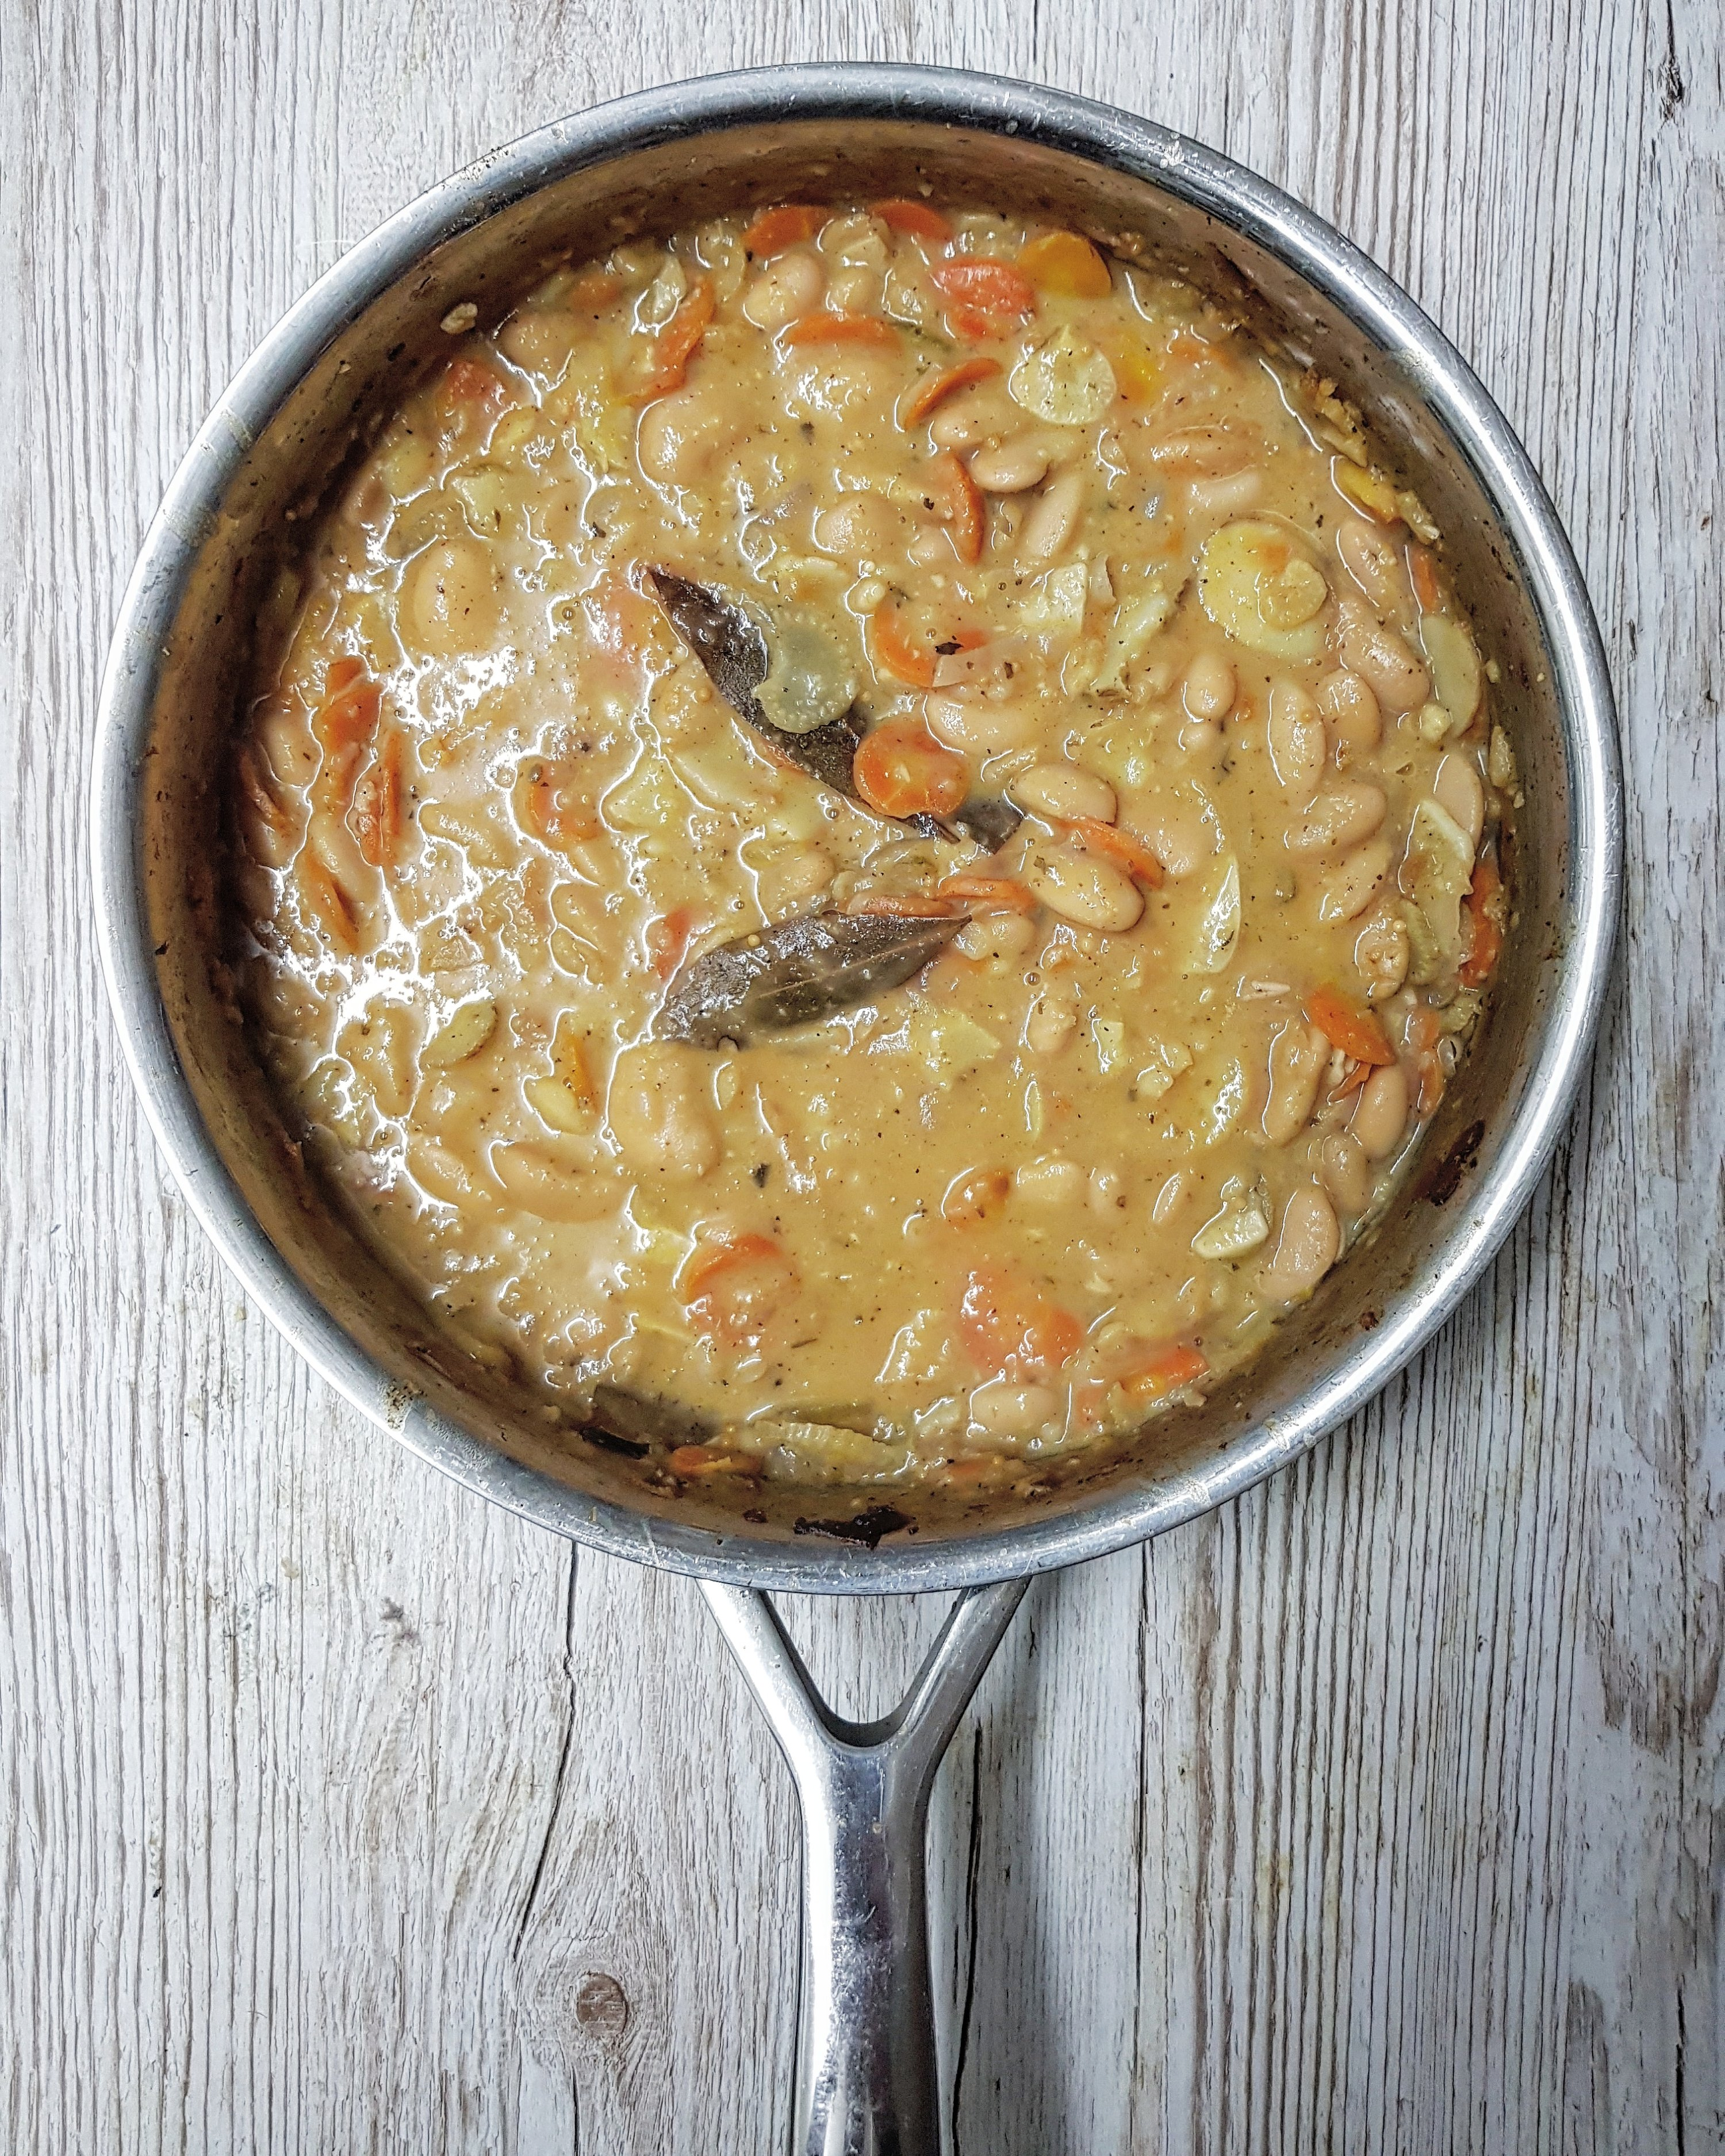 Butter Bean & Cider Cassoulet recipe by Jack Monroe